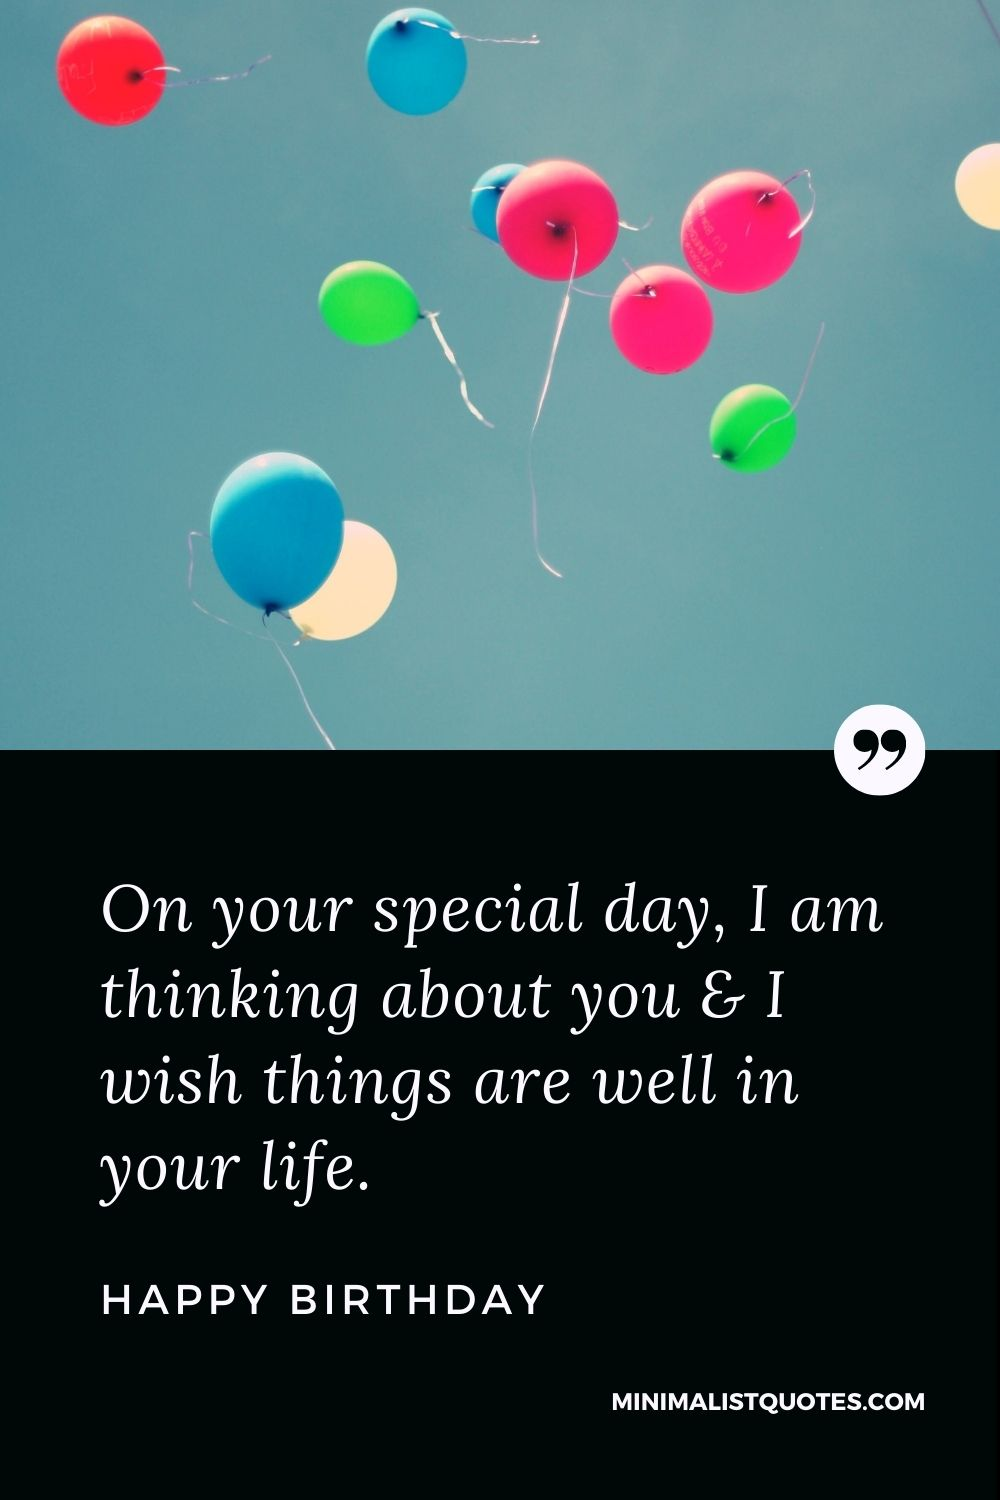 Happy Birthday Wishes - On your special day, I am thinking about you & I wish things are well in your life.